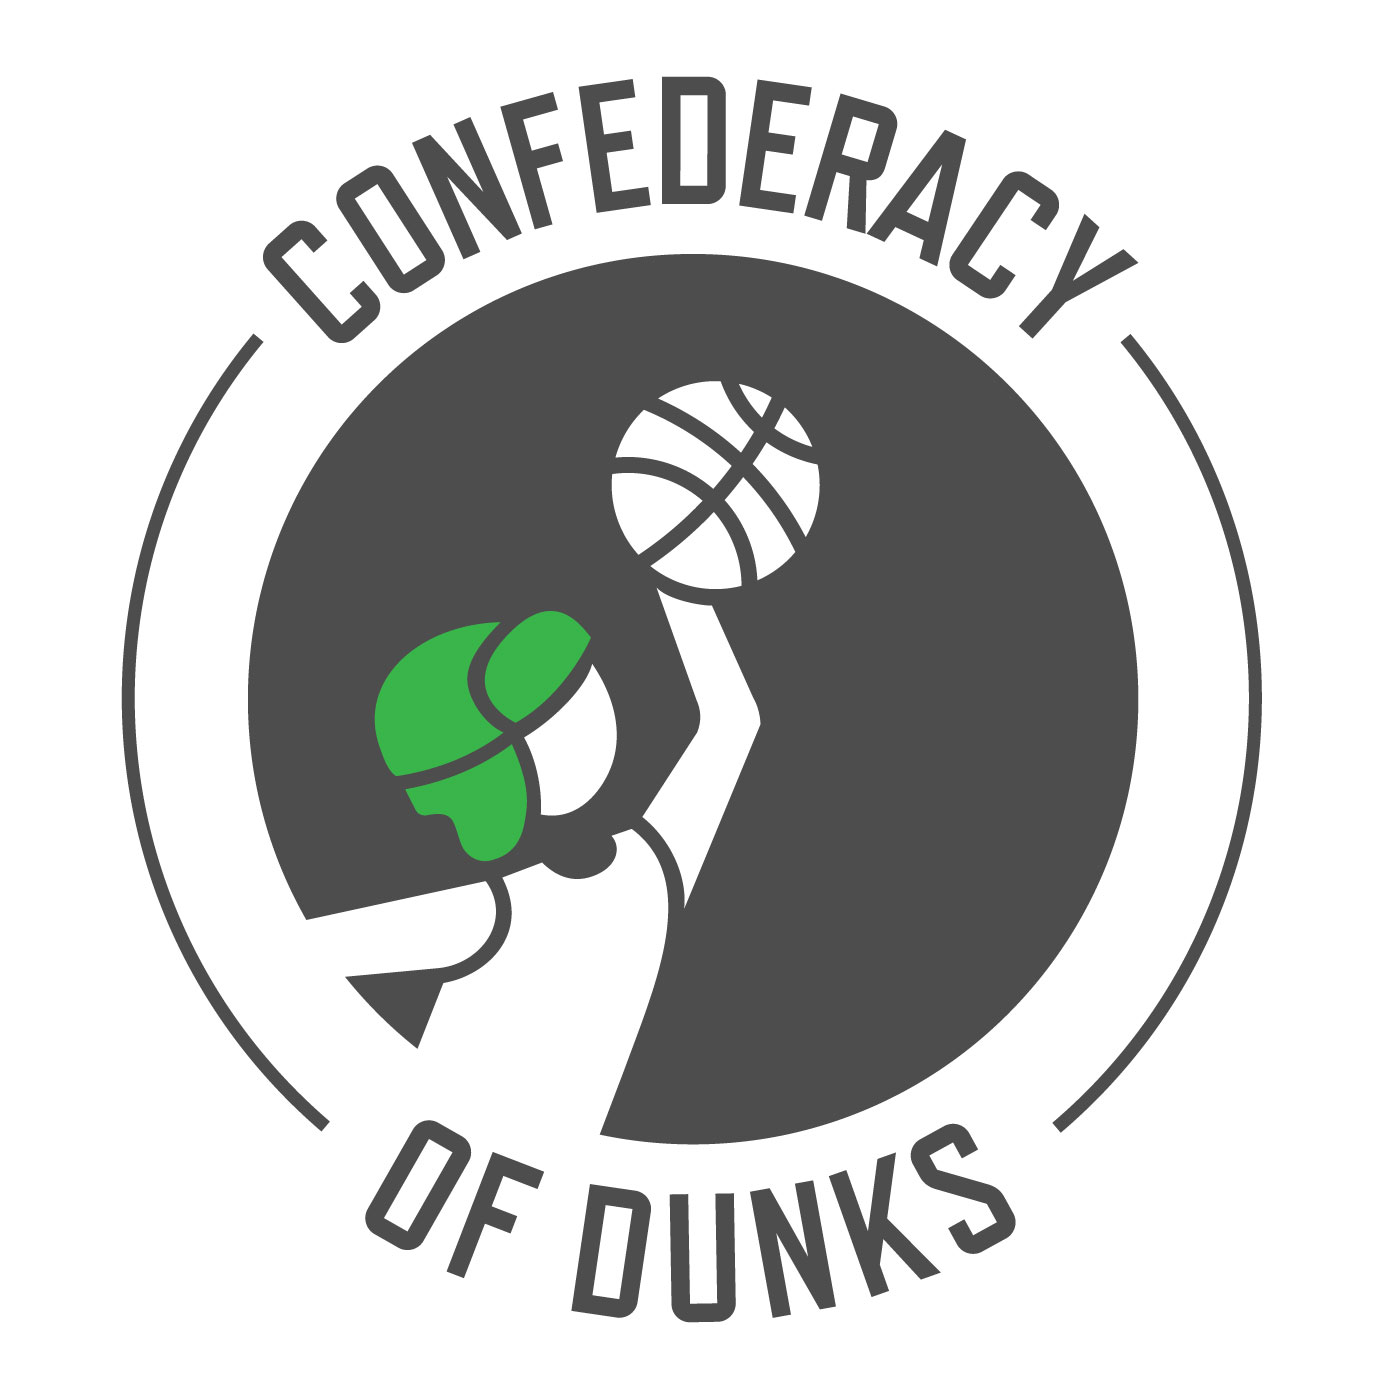 Confederacy of Dunks